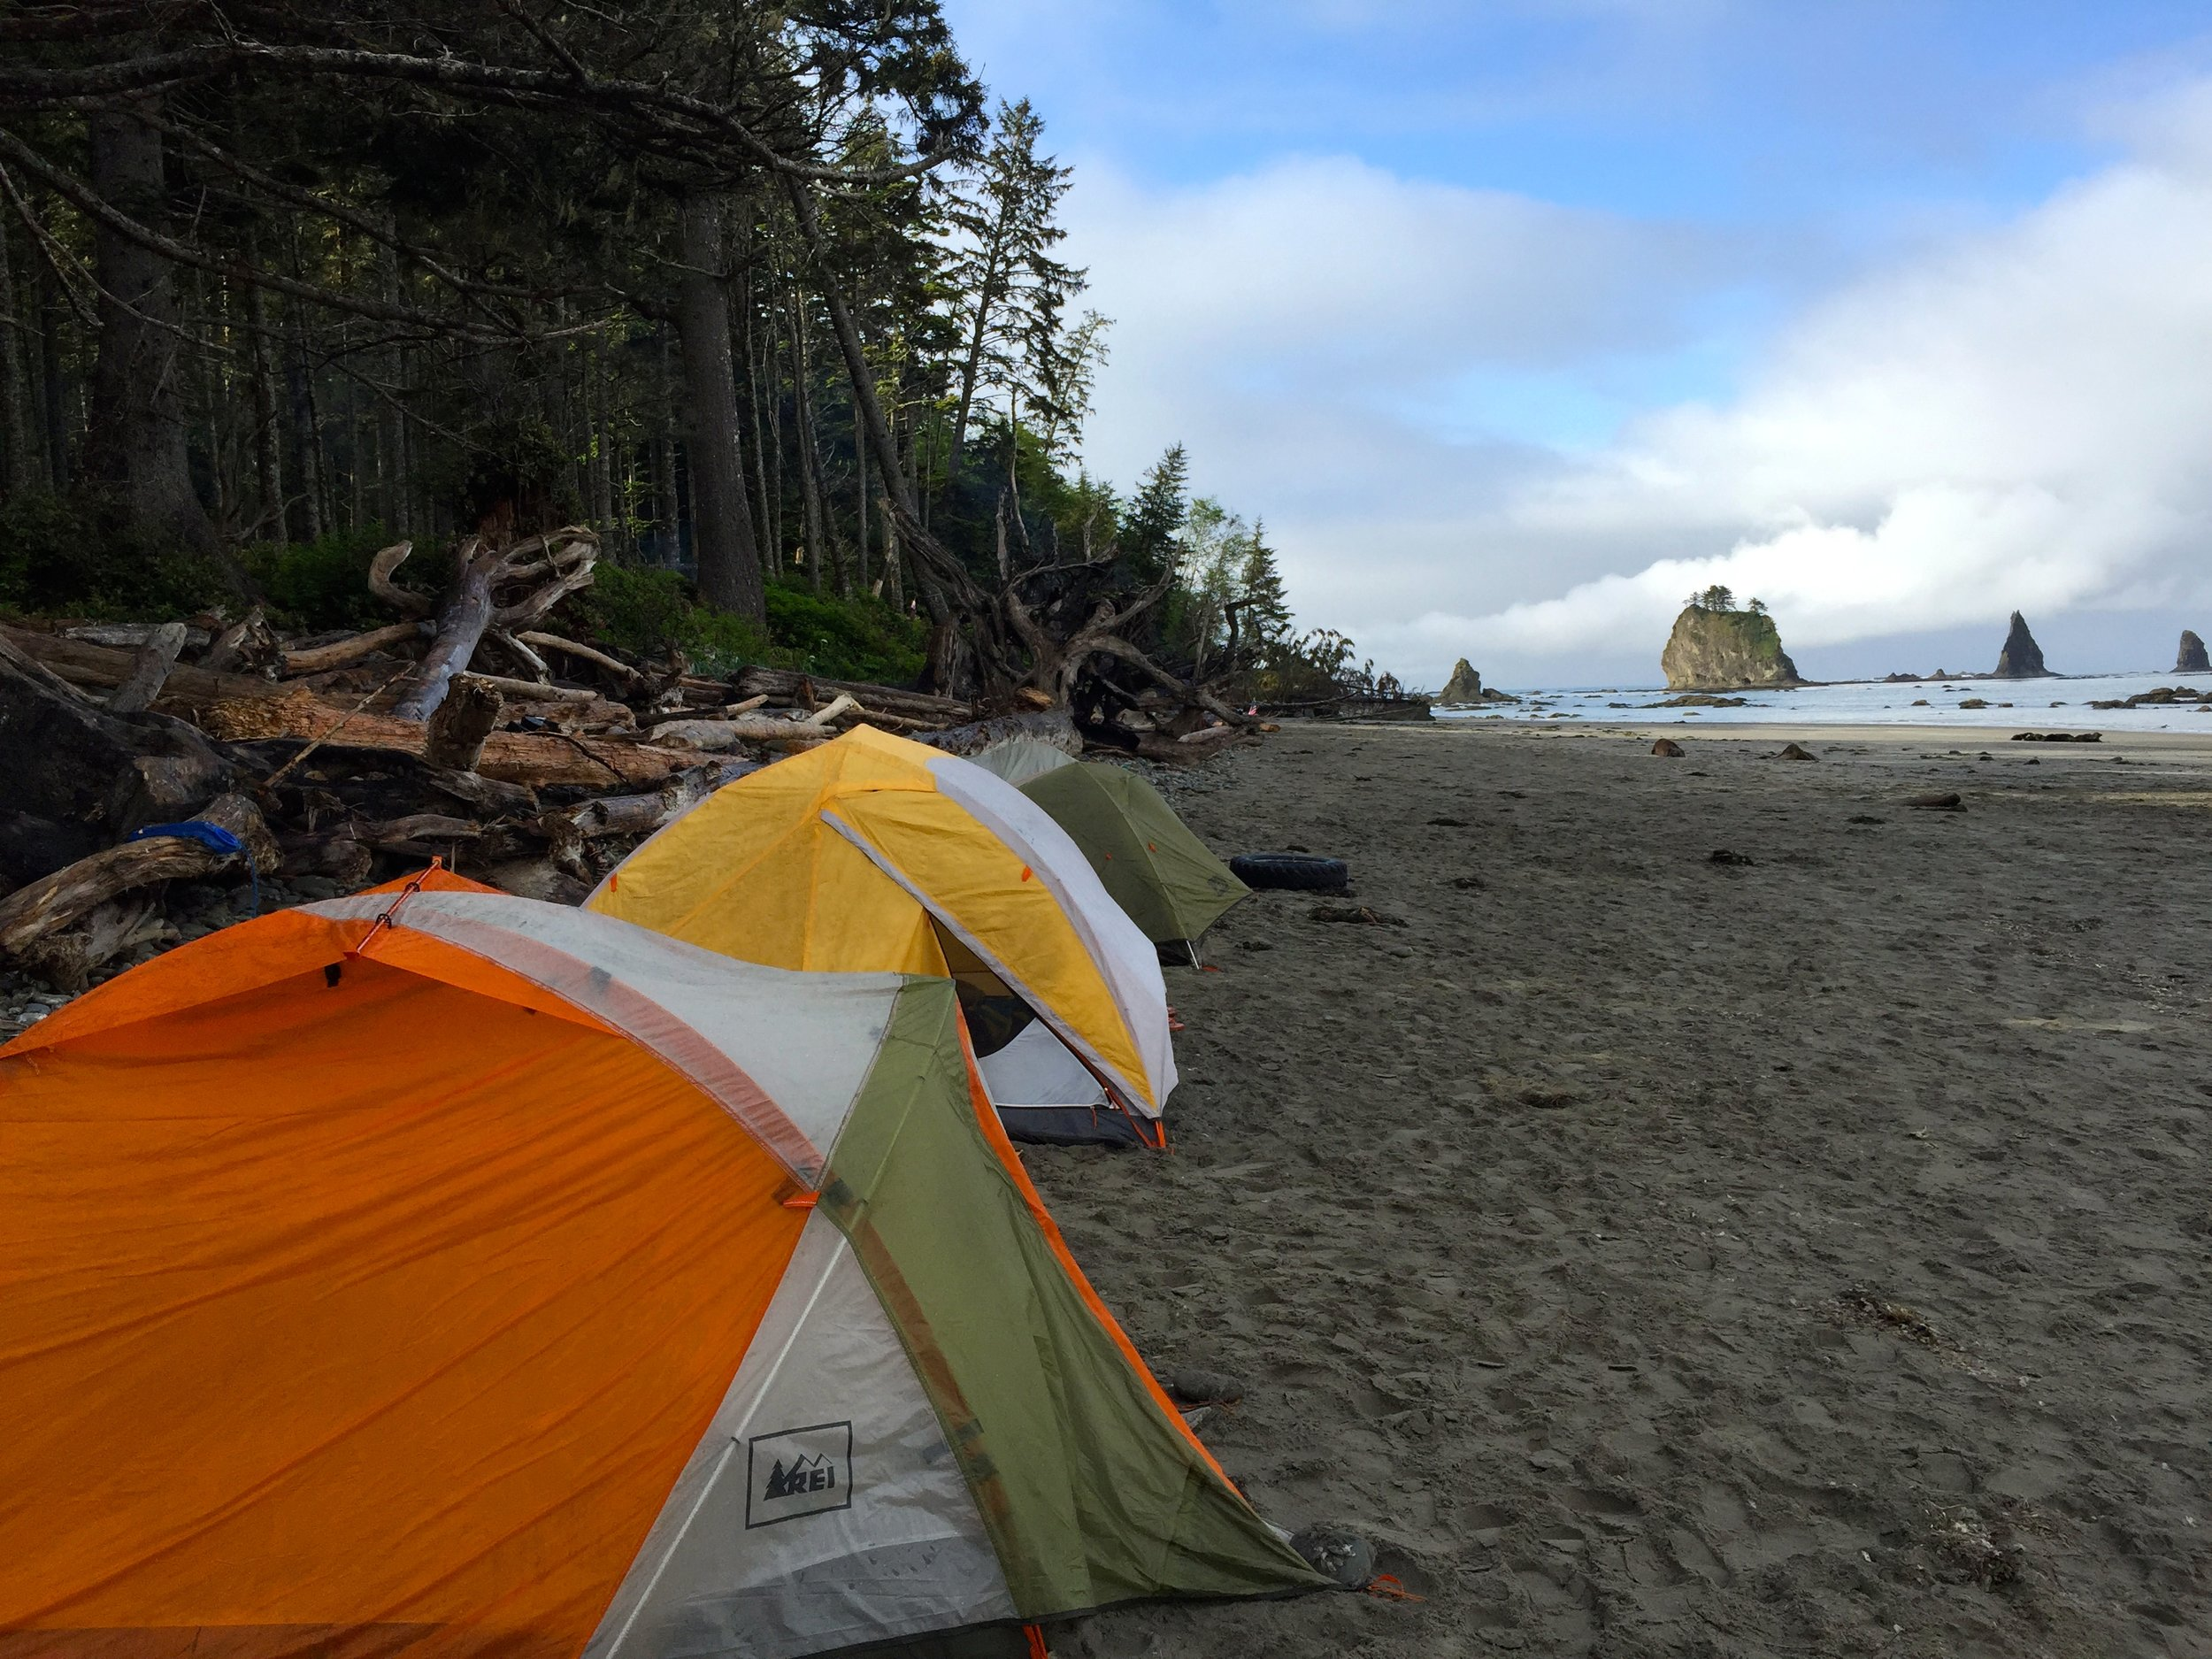 Camping at Third Beach at Olympic National Park